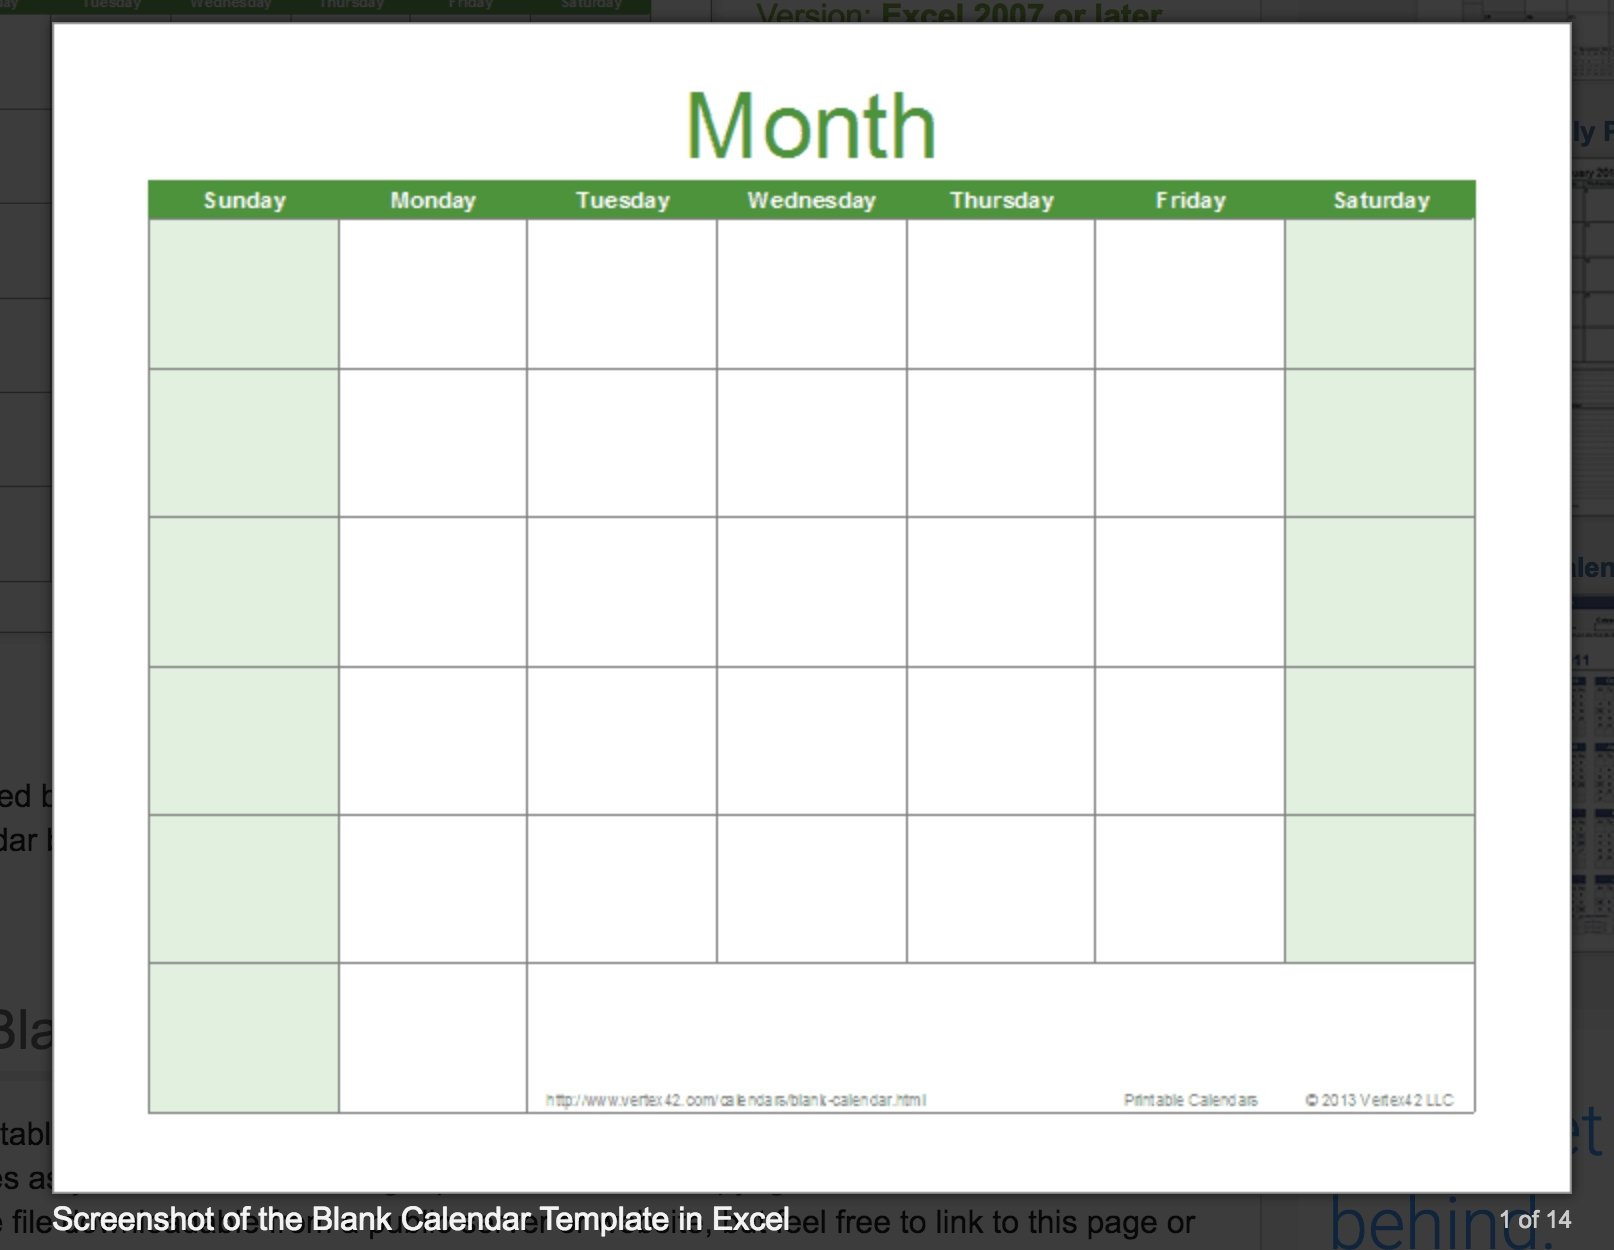 Blank Calendar: Wonderfully Printable 2019 Templates-Free Blanks Calendar Printable With Notes And Lines